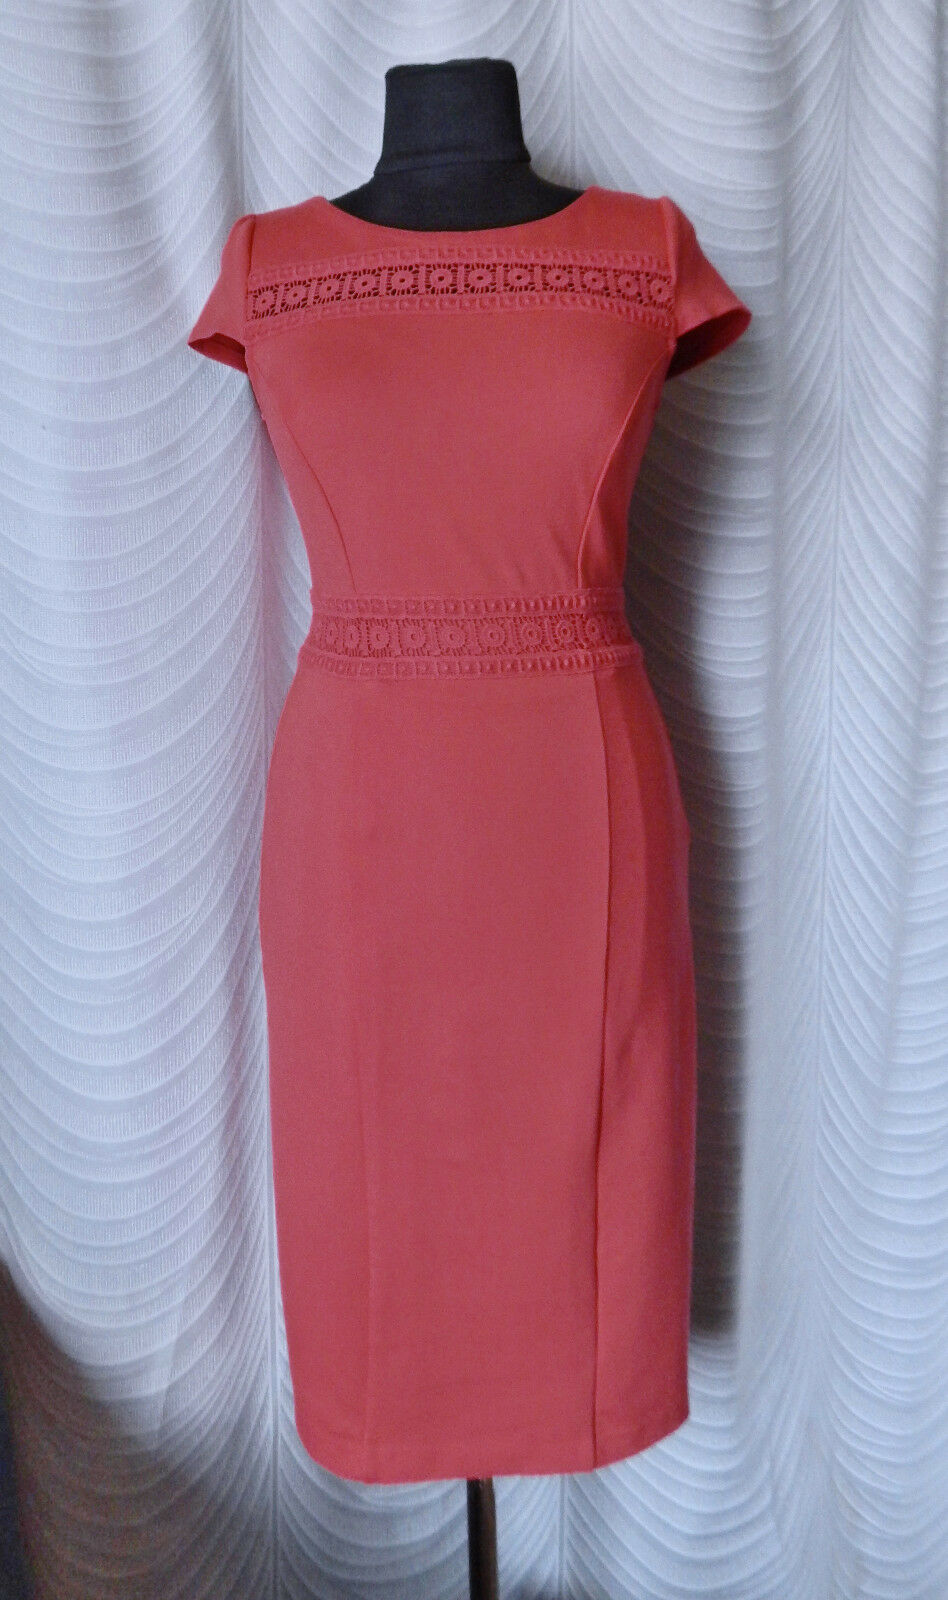 Boden Smart Pink Coral Pencil Dress Size R US 4R Short Sleeve Office